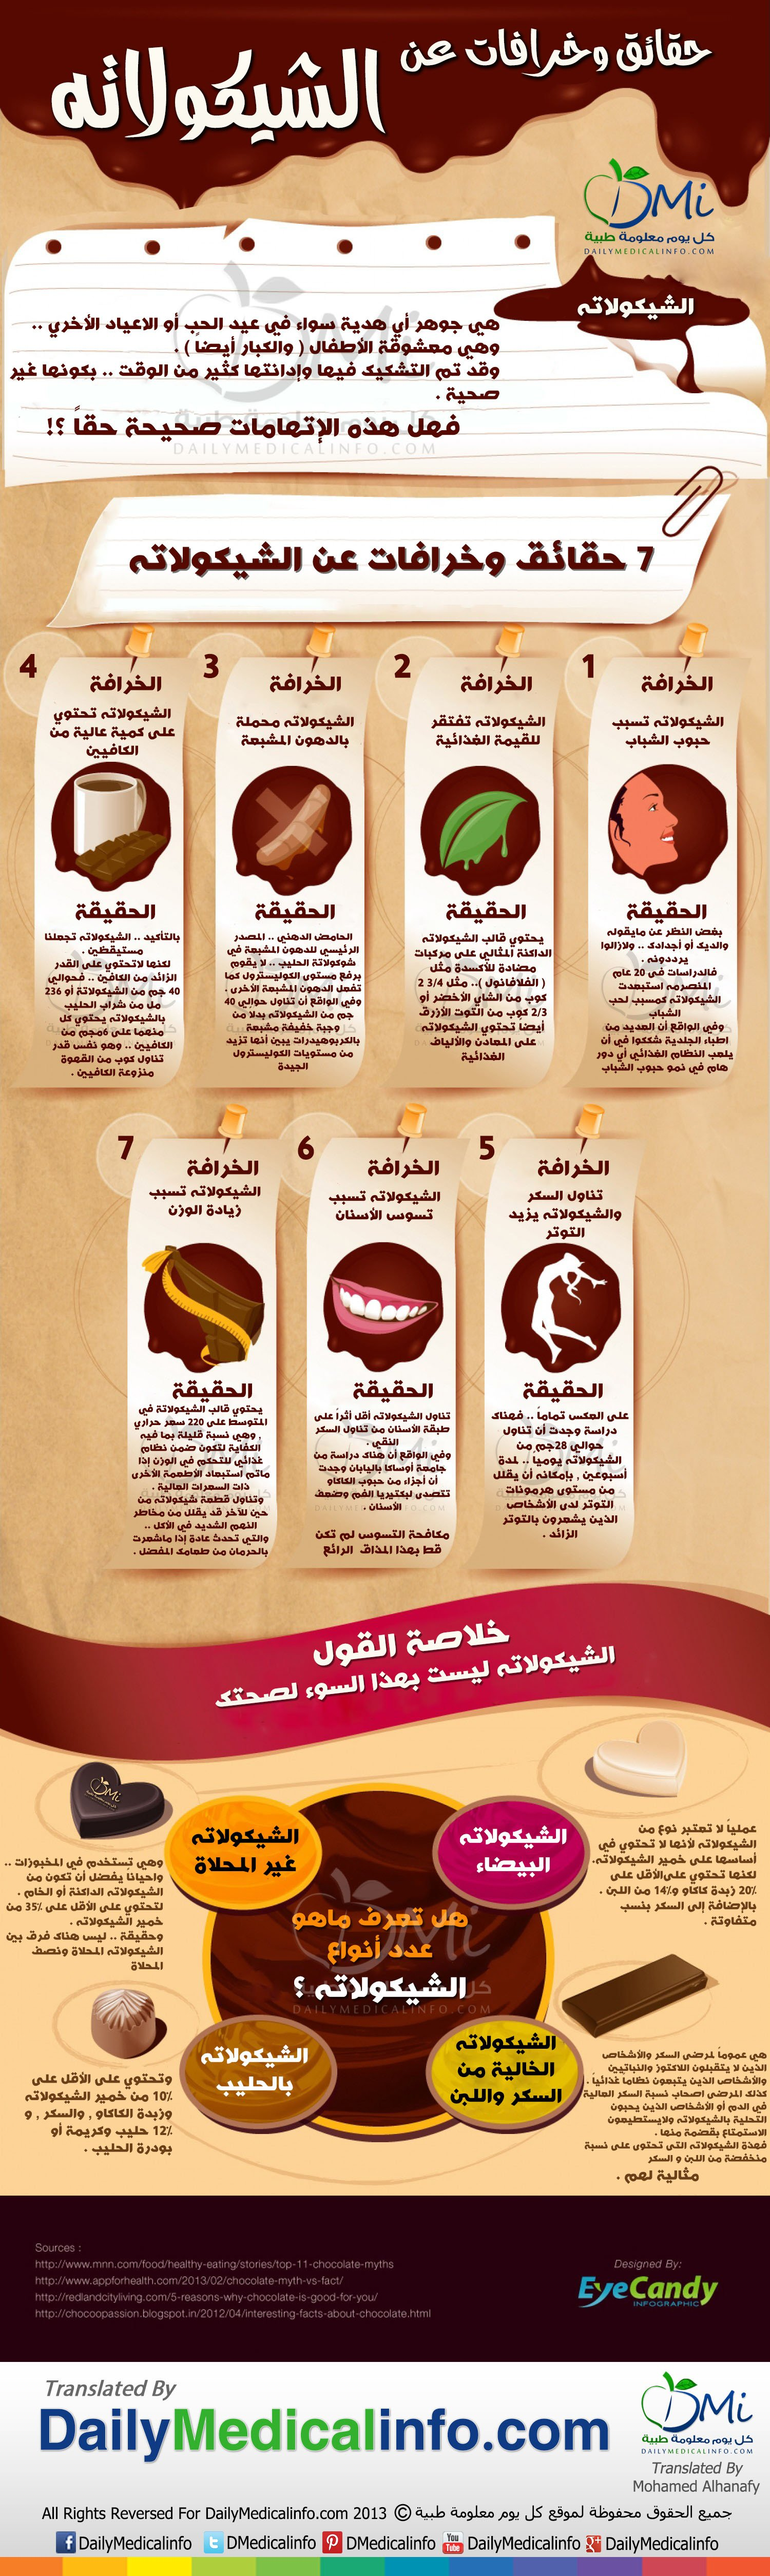 DailyMedicalInfo facts and myths about chocolate